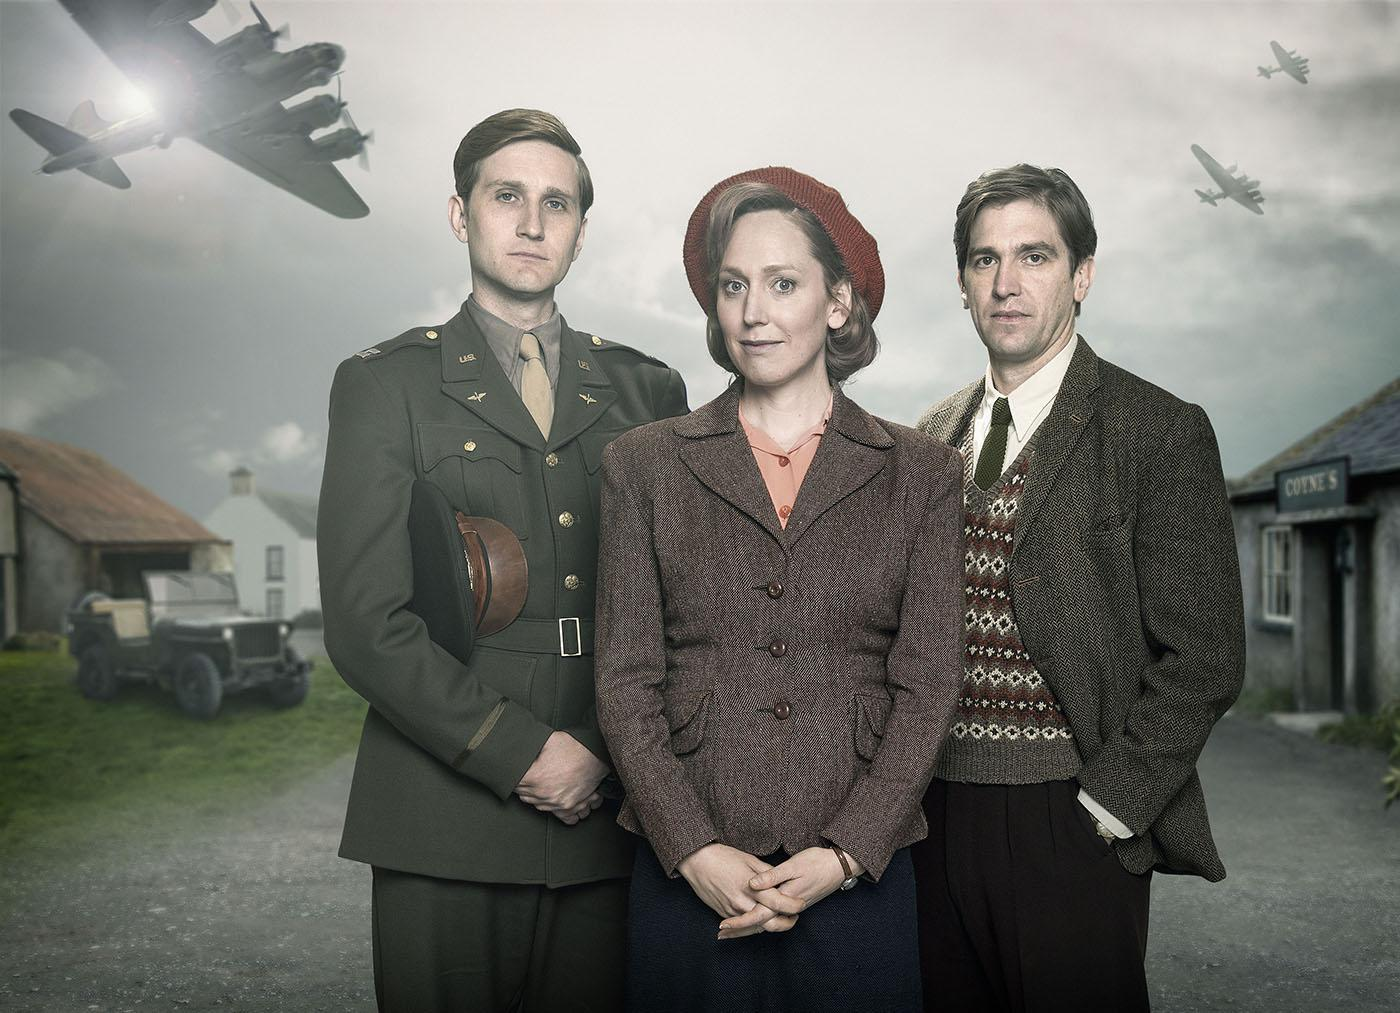 Aaron Staton, Hattie Morahan, and Owen McDonnell in 'My Mother and Other Strangers.' Photo: Steffan Hill/BBC 2016 for MASTERPIECE